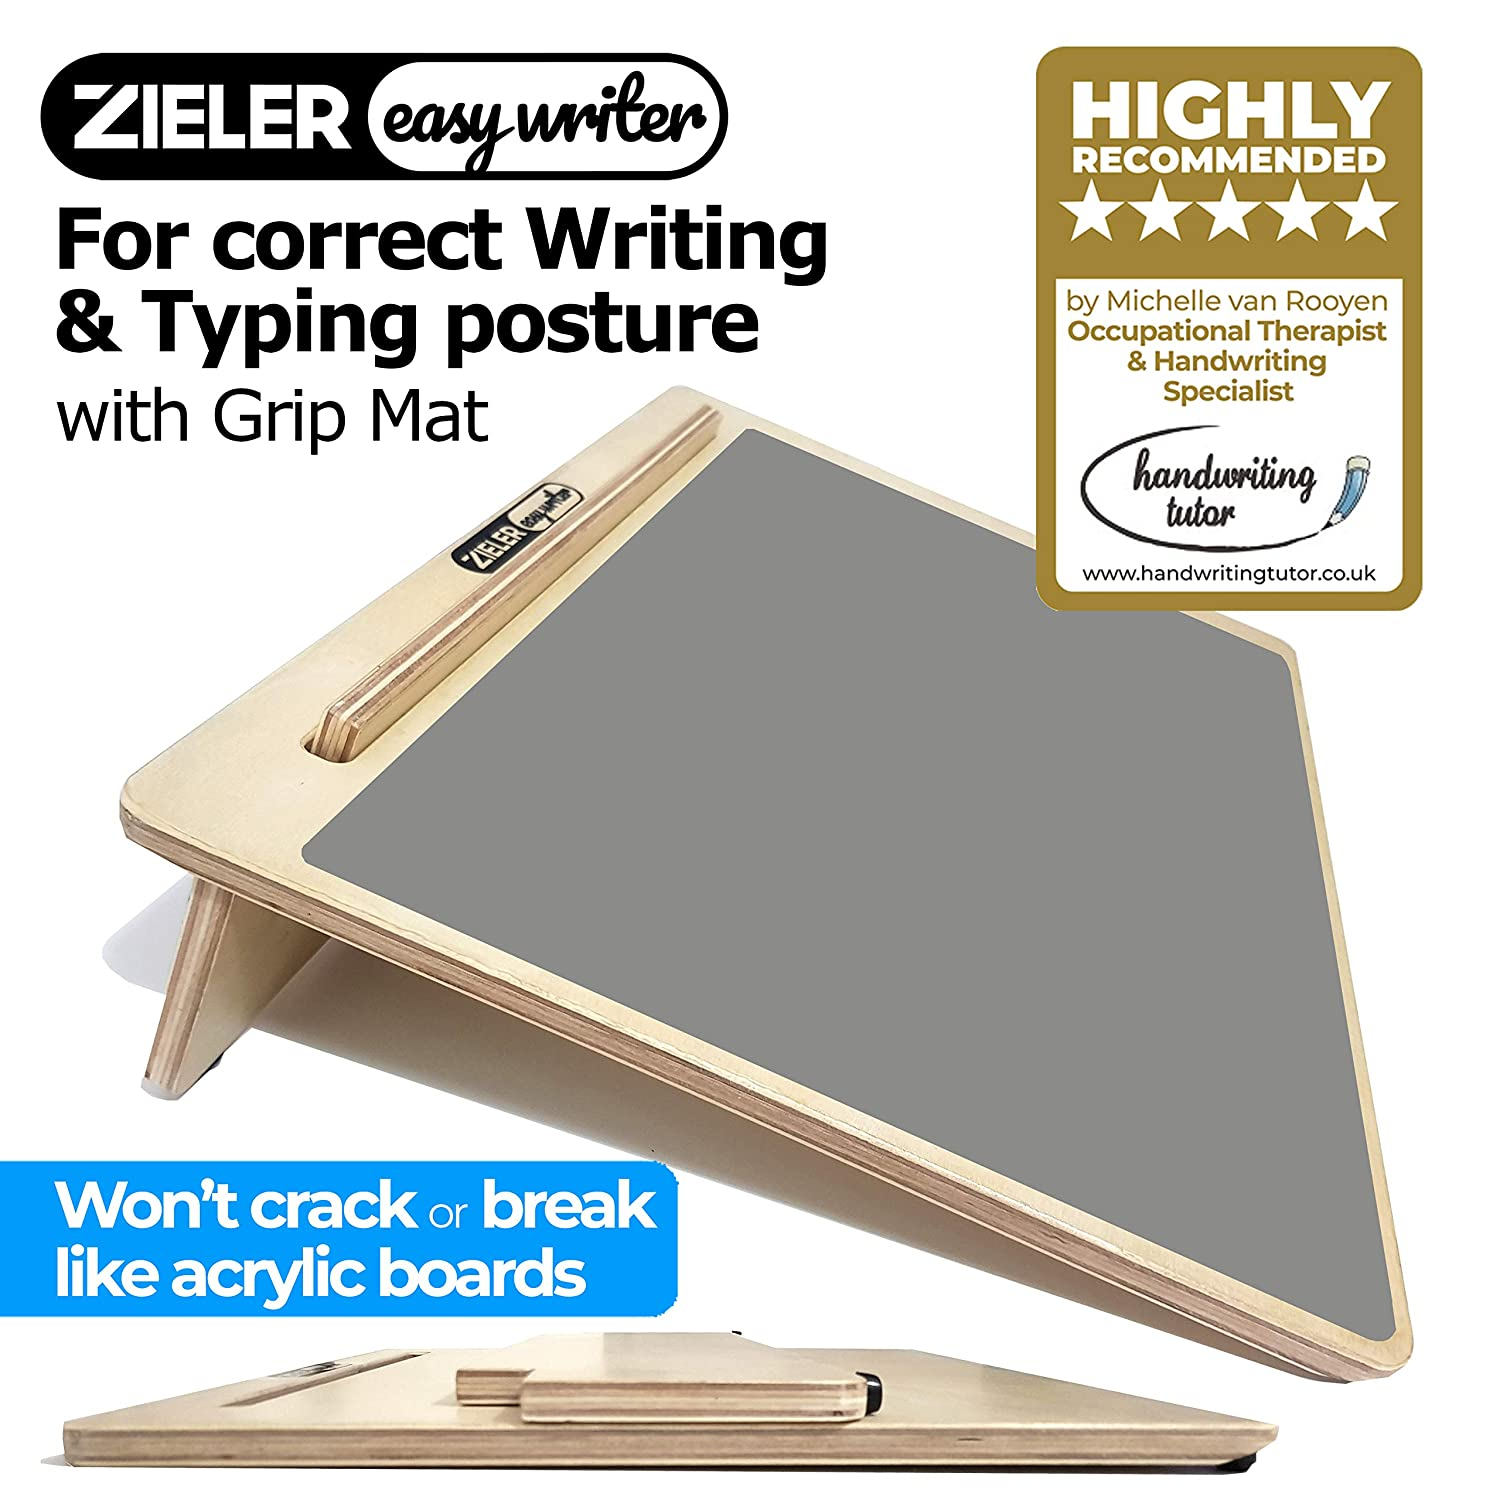 Ergonomic A3 Writing Slope with Grip MAT for Better Writing Posture & Comfort - by ZIELER Easywriter, Lacquered Wood with 20° Angle. Suitable for Children & Adults. Space Saving Design